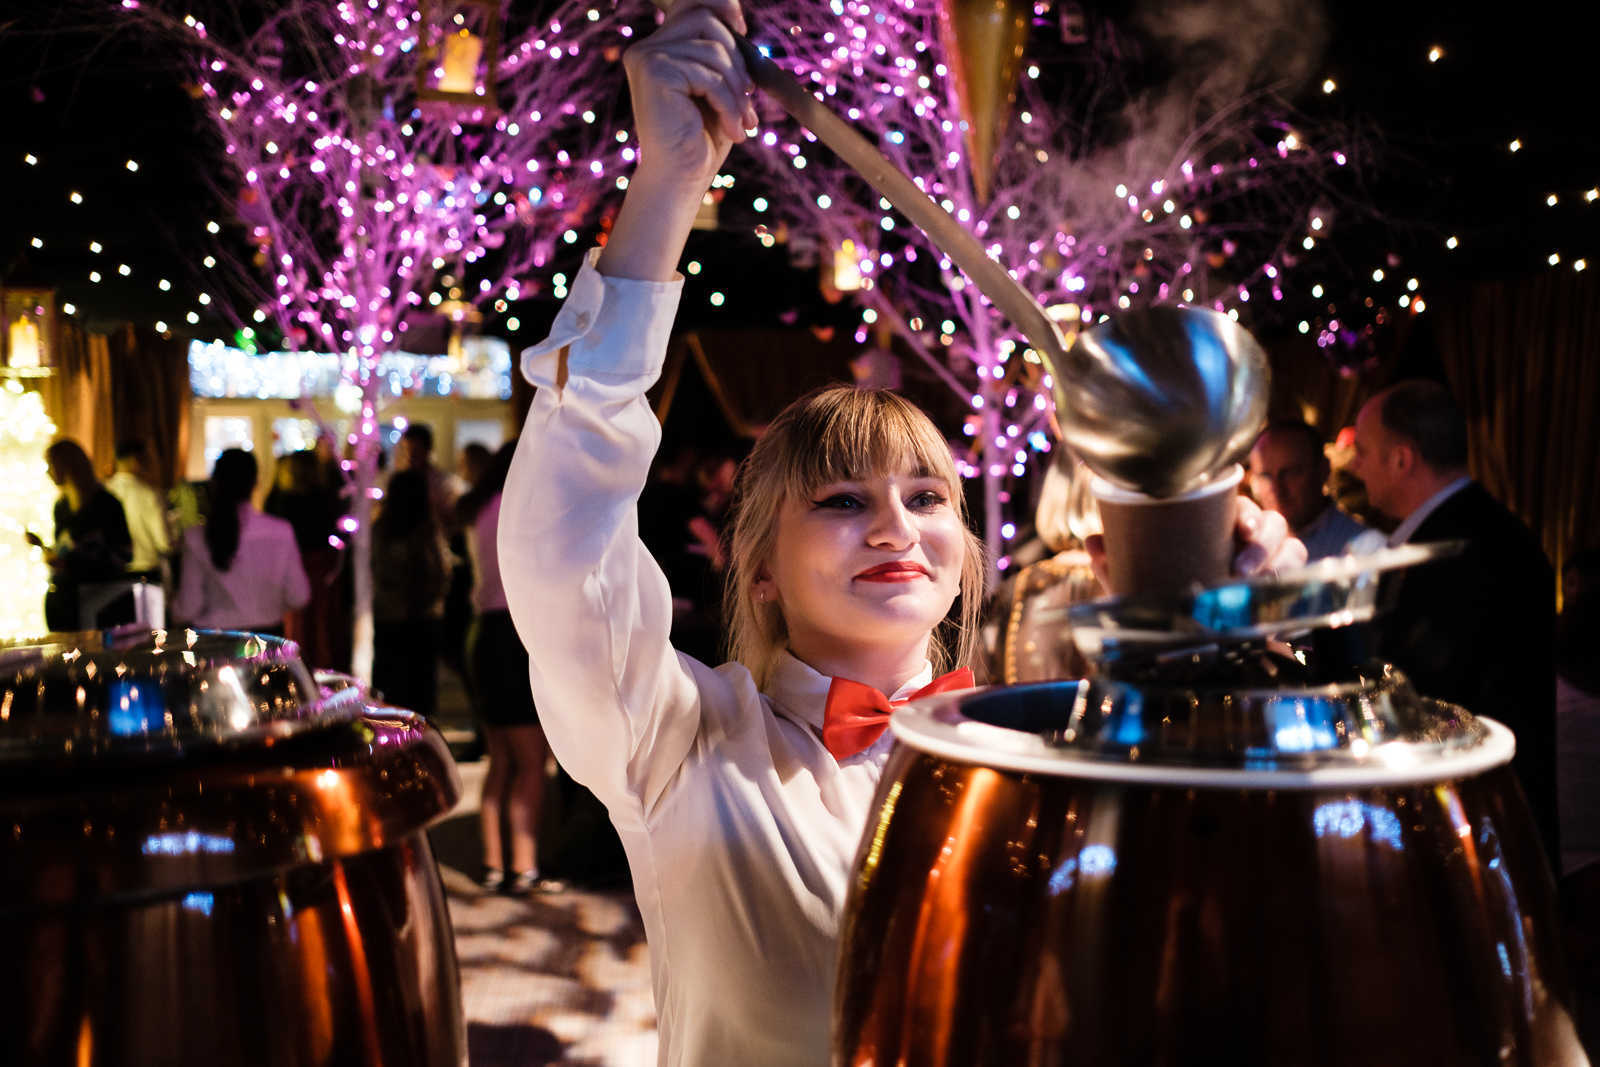 Corporate event photography with Christmas decorations and Waitress serving mulled wine